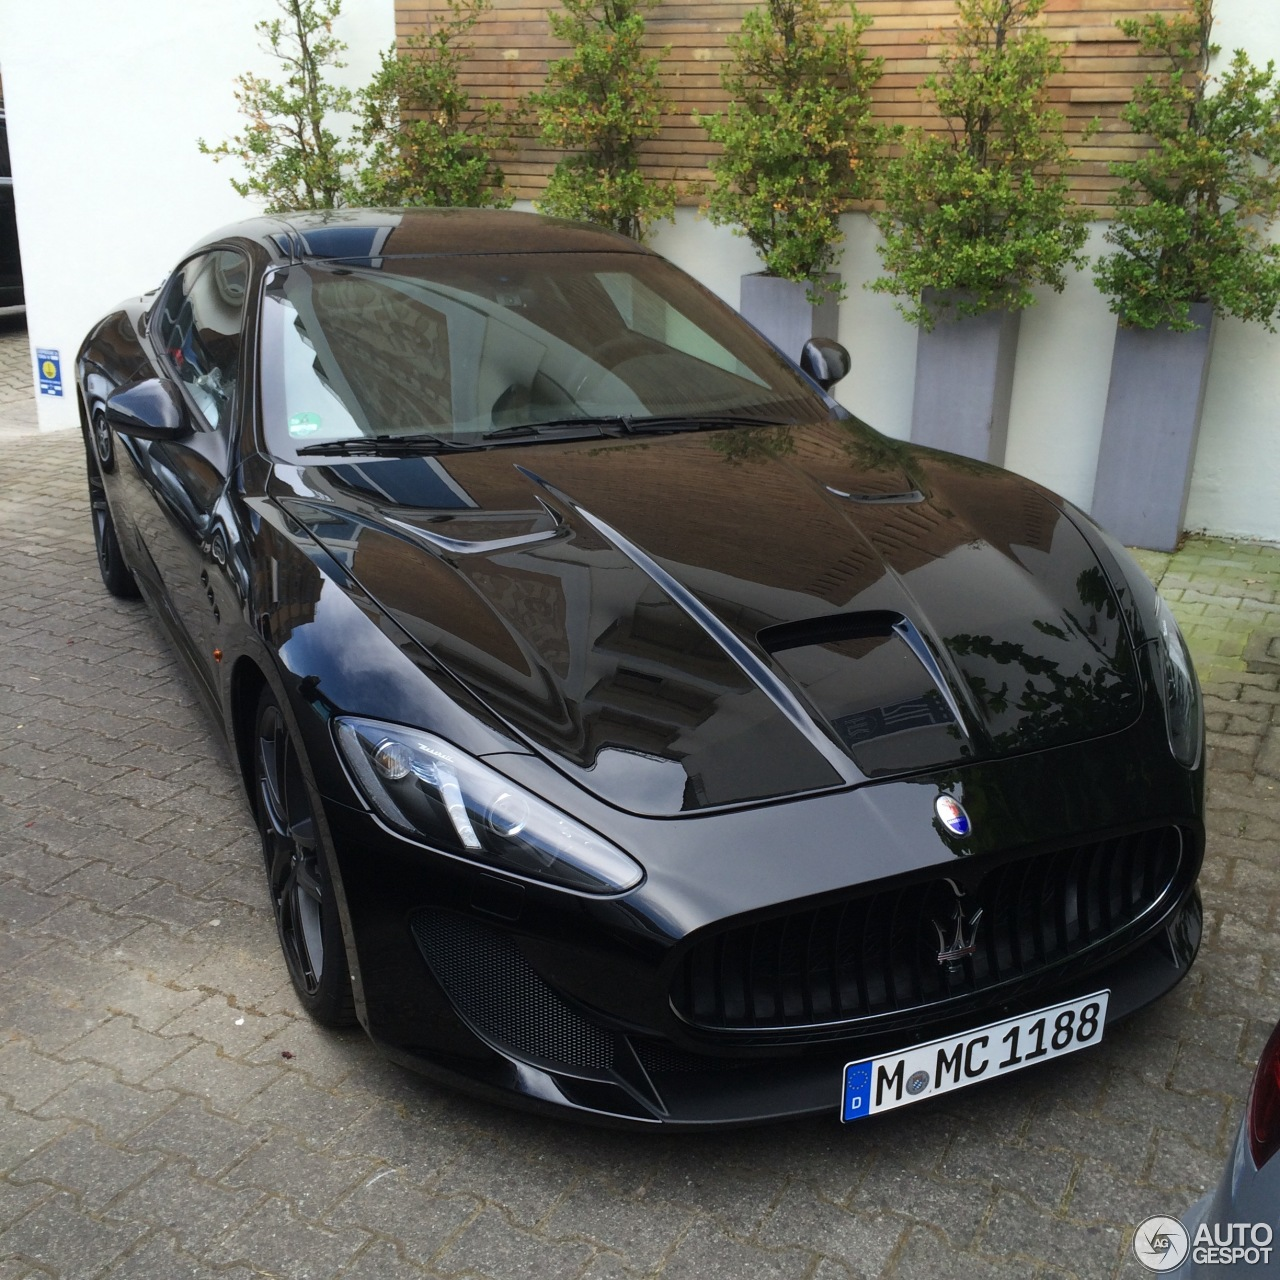 maserati granturismo mc stradale 2013 3 july 2016 autogespot. Black Bedroom Furniture Sets. Home Design Ideas